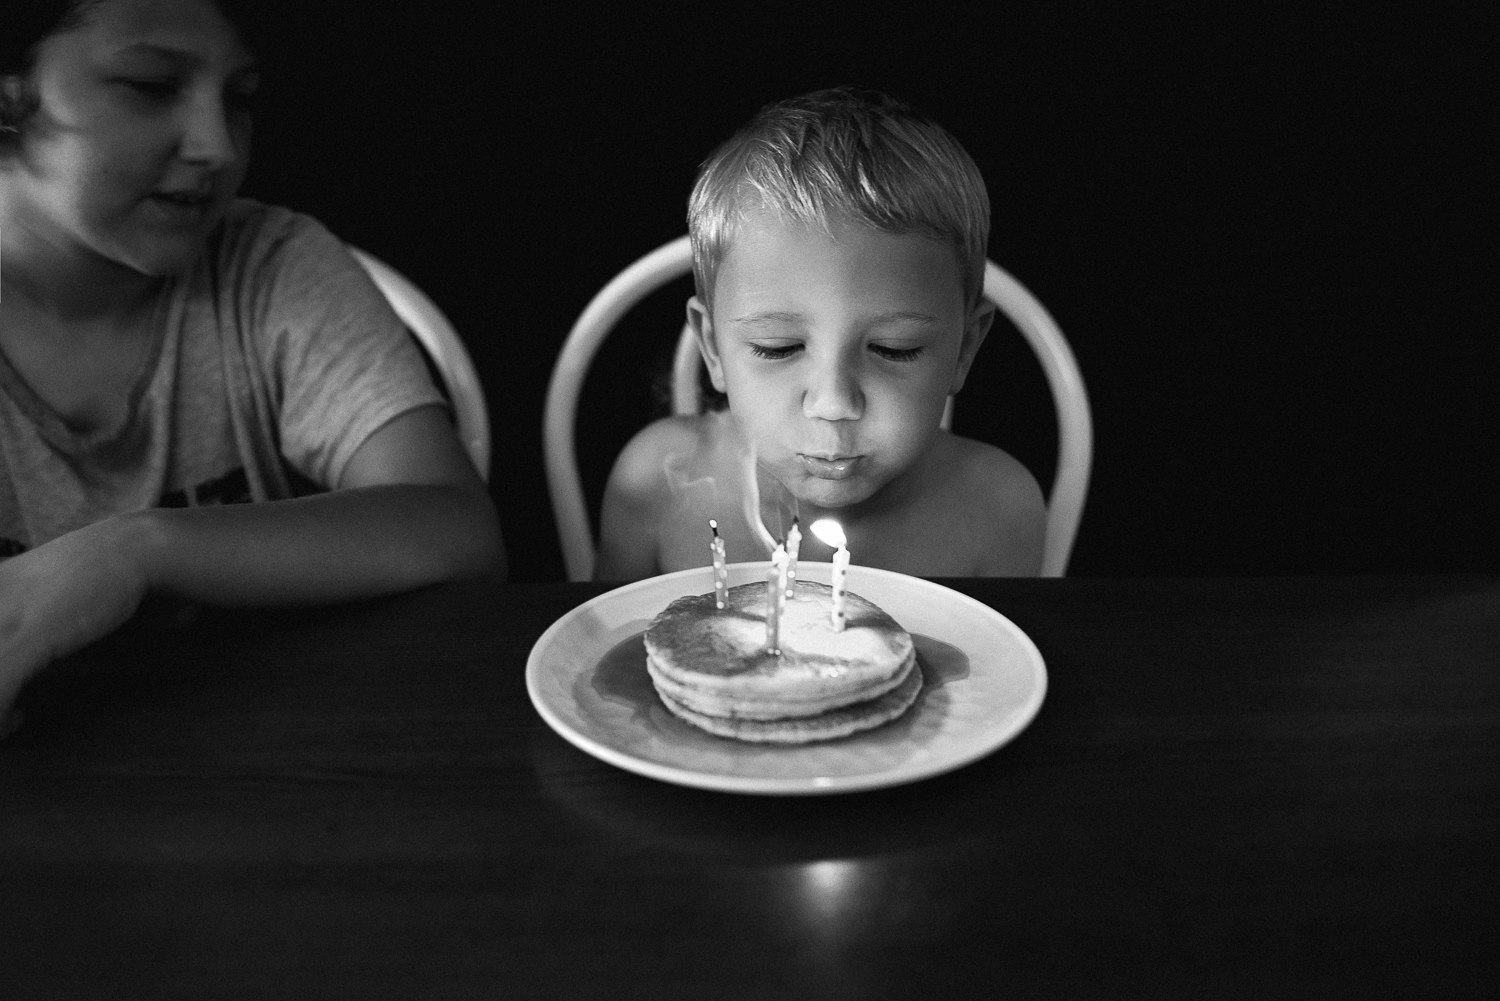 black and white image of young boy blowing out five birthday candles on a stack of pancakes with his older brother looking on from the side